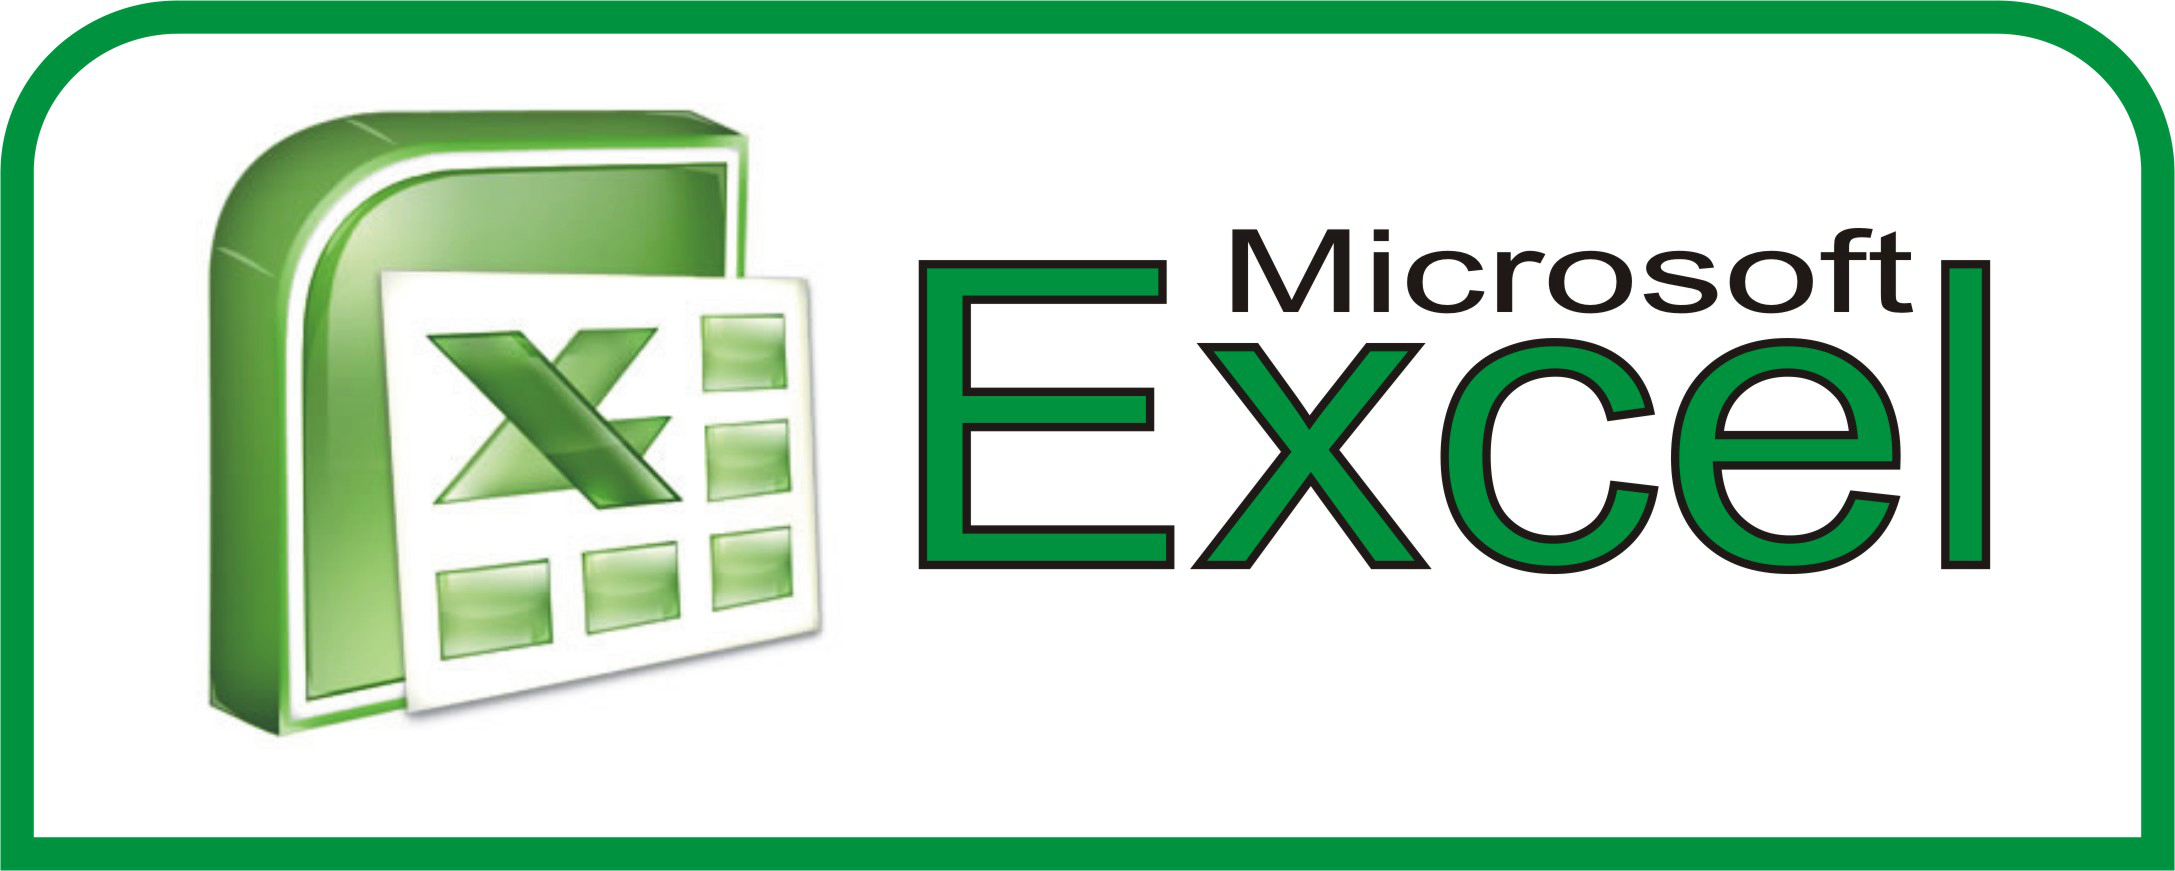 Ediblewildsus  Outstanding  Excel Shortcuts You Probably Didnt Know About  Techdissected With Extraordinary Sort Excel Column Alphabetically Besides Import File Into Excel Furthermore Excel Date Code With Astonishing Replace Text Excel Also Excel Supermoto Rims In Addition Excel  Dashboard And Excel Formula Calculate Age As Well As Candlestick Chart Excel Additionally Excel Vba List Files In Folder From Techdissectedcom With Ediblewildsus  Extraordinary  Excel Shortcuts You Probably Didnt Know About  Techdissected With Astonishing Sort Excel Column Alphabetically Besides Import File Into Excel Furthermore Excel Date Code And Outstanding Replace Text Excel Also Excel Supermoto Rims In Addition Excel  Dashboard From Techdissectedcom